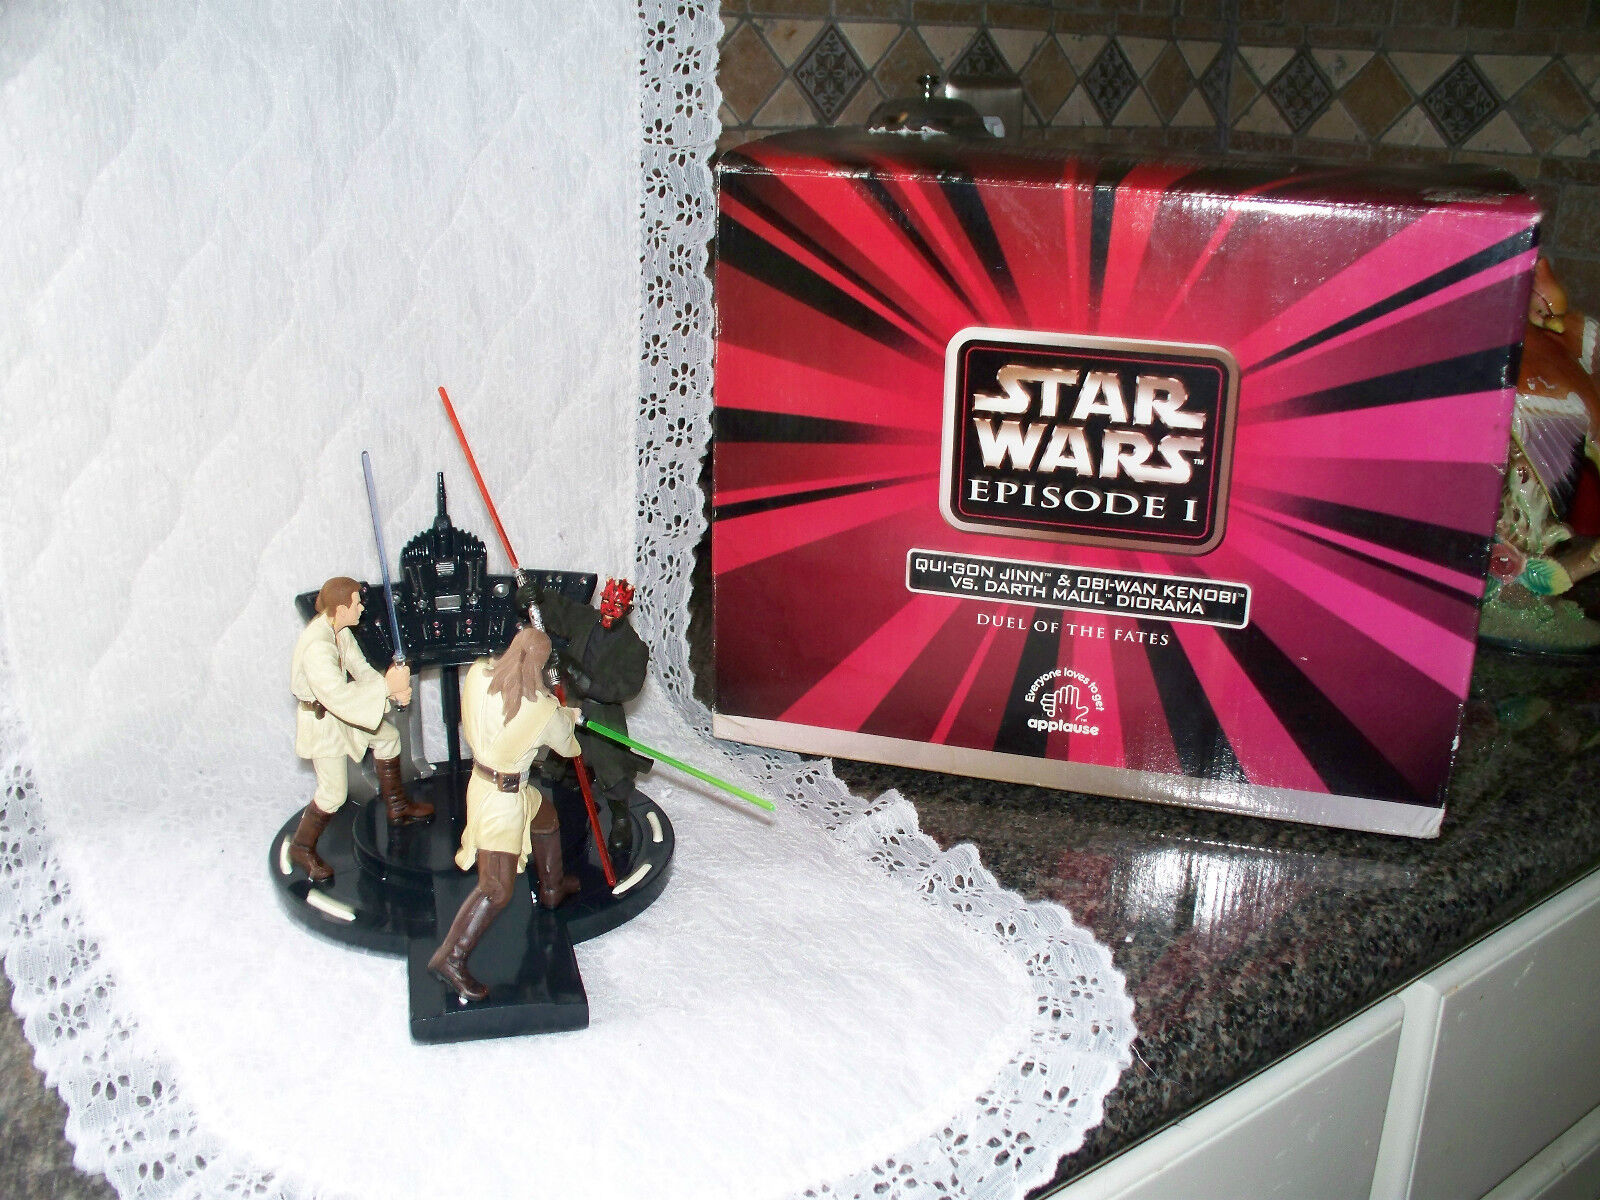 Star Wars Duel of the Fates Diorama Qui-Gon Obi-Wan Kenobi Vs. Darth Maul    MIB